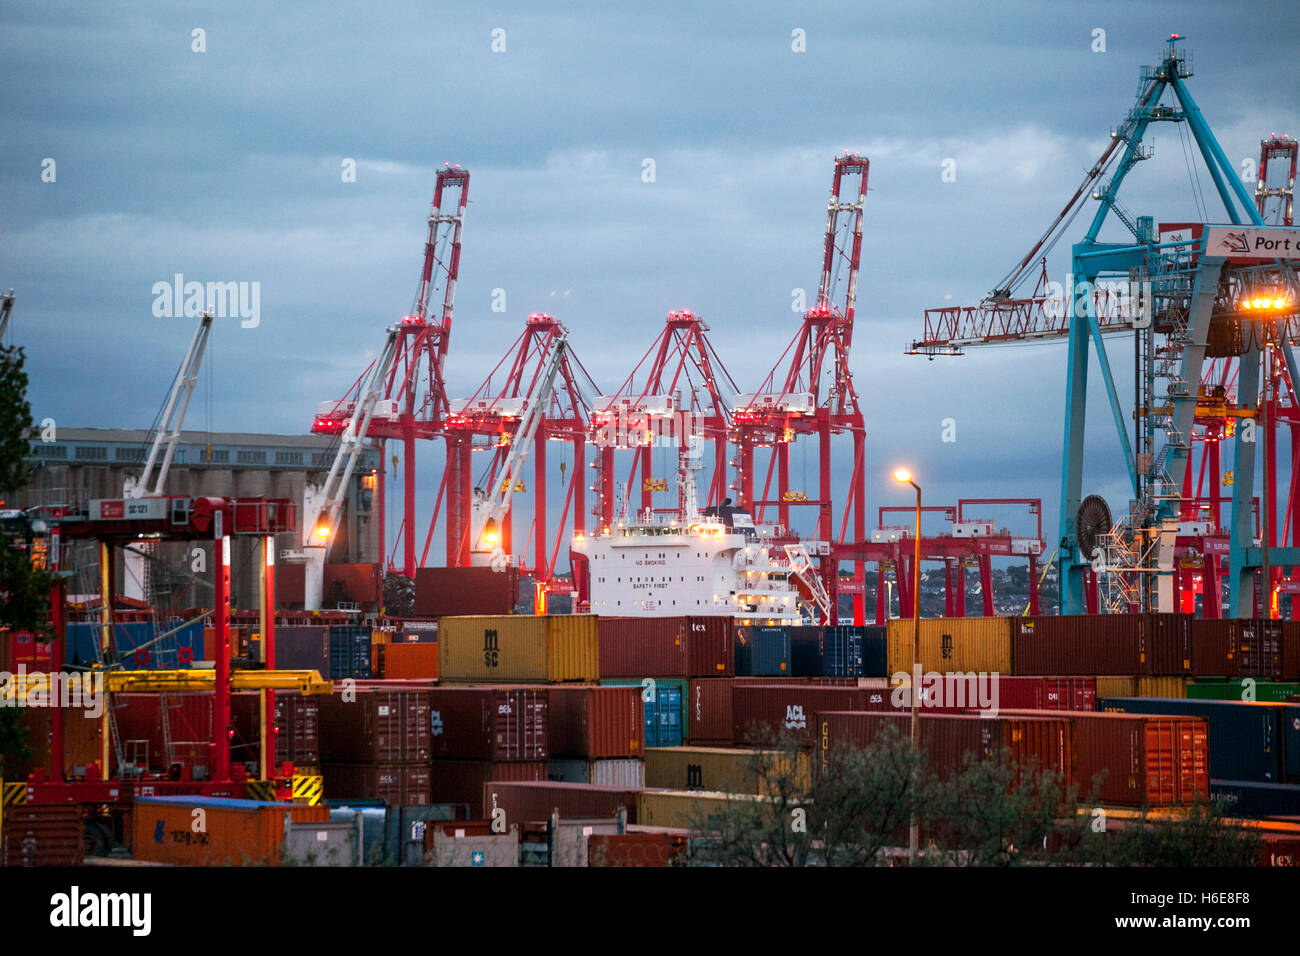 British exports and imports being unloaded and loaded at Seaforth Docks, Liverpool2, Merseyside,  UK - Stock Image